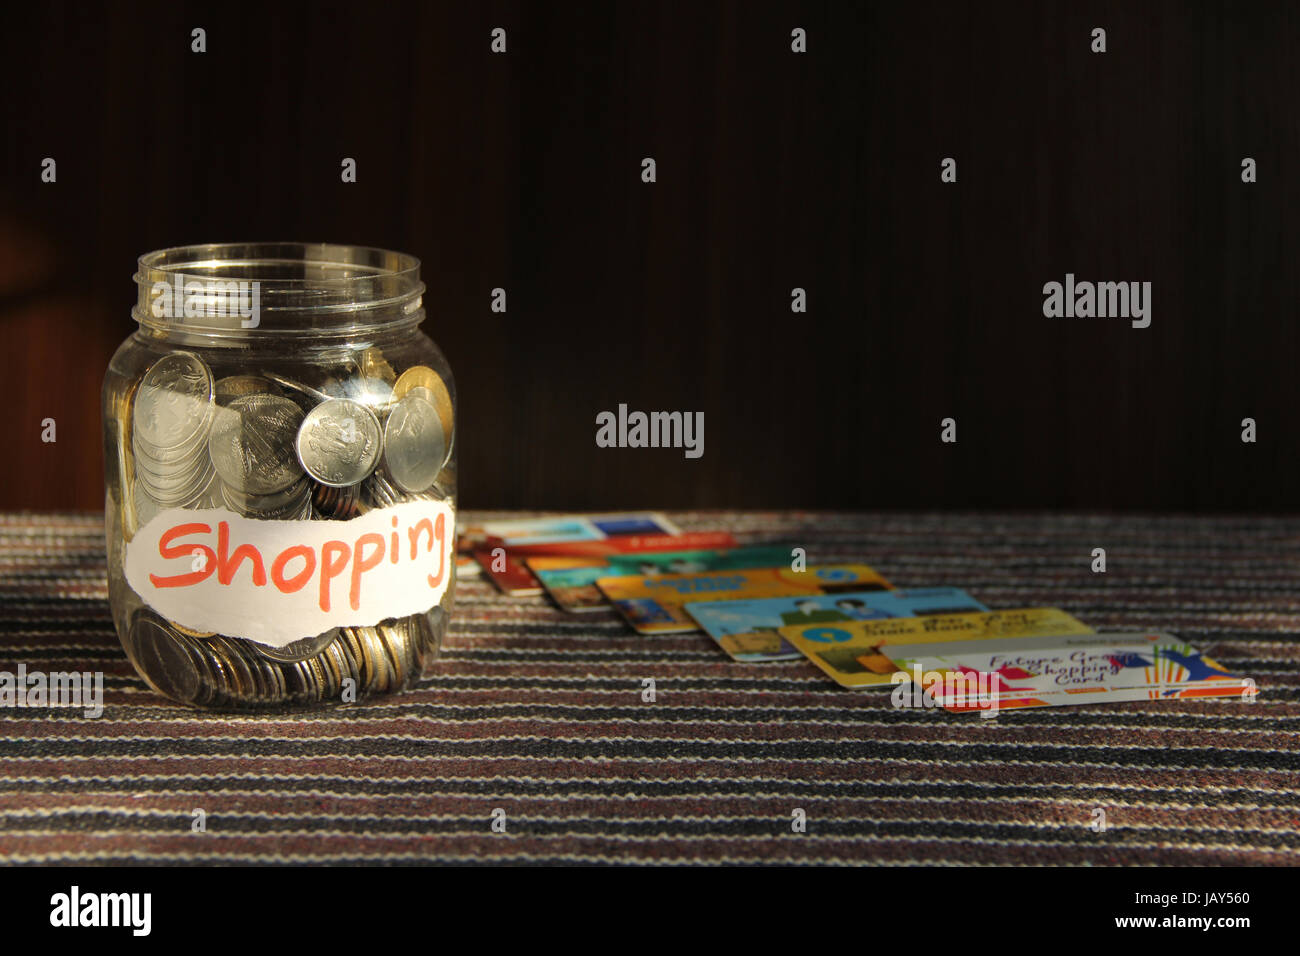 Coins in money jar with shopping label and credit cards, finance concept - Stock Image